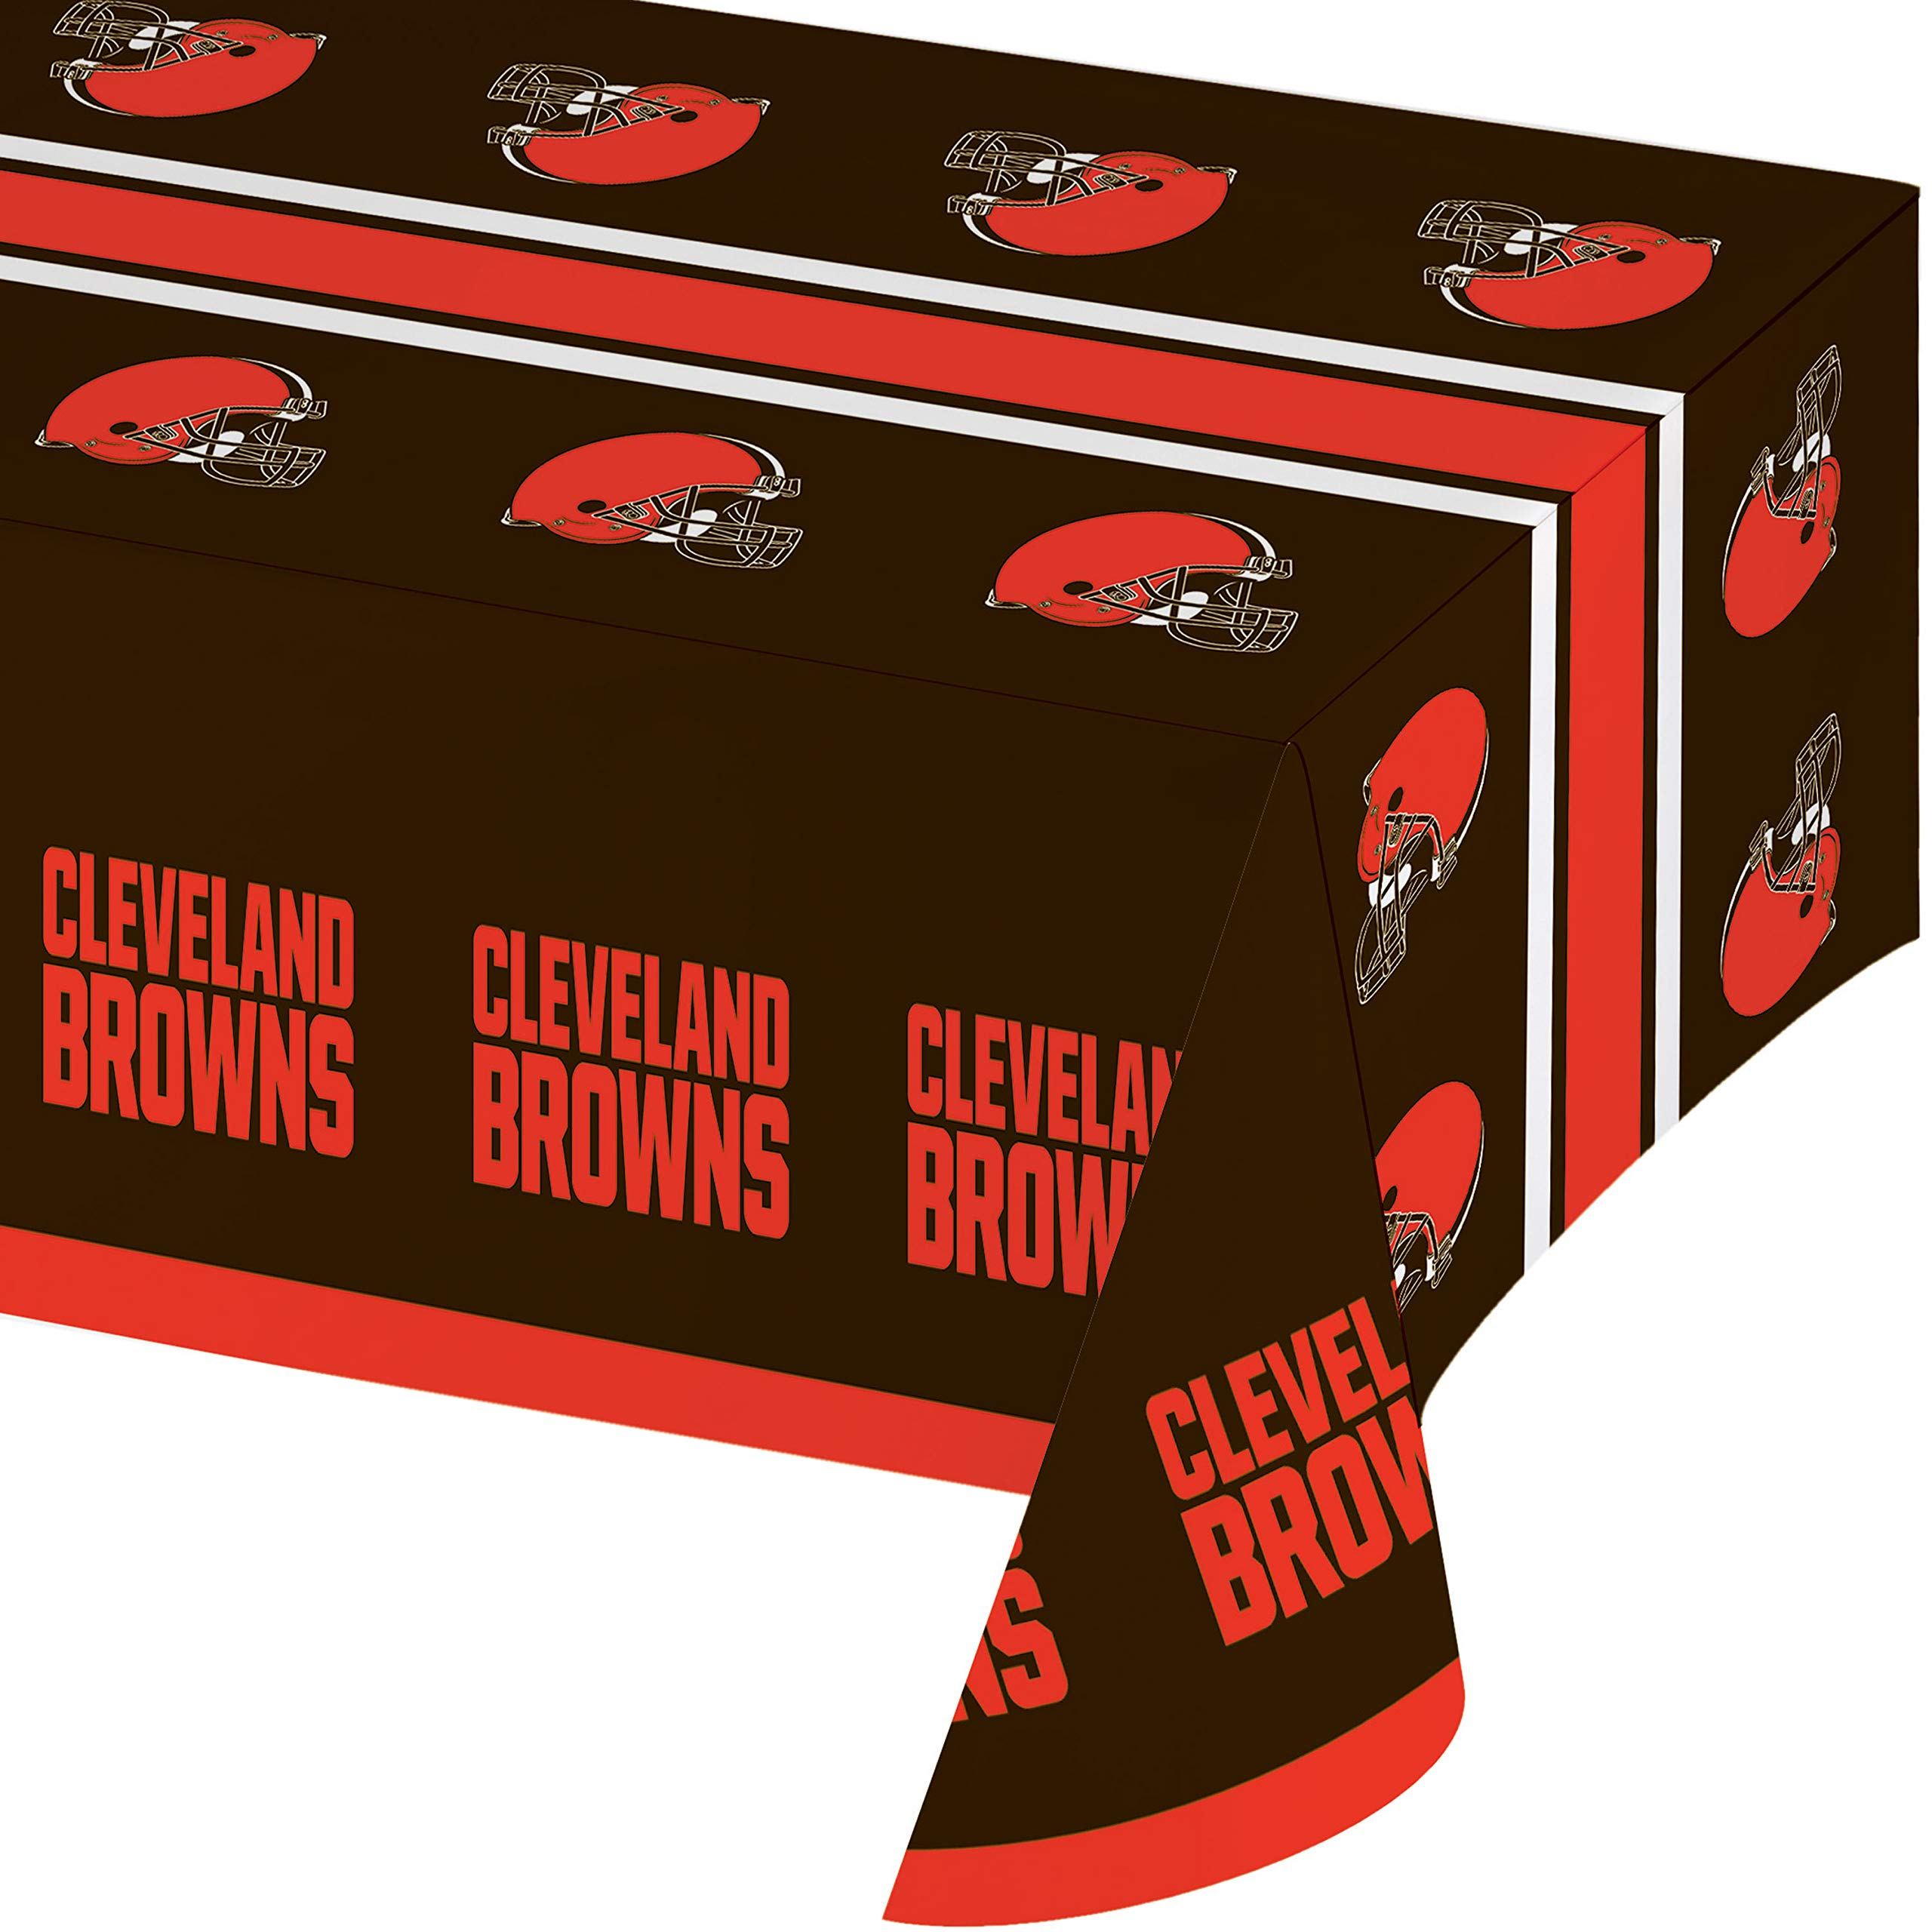 Cleveland Browns Plastic Tablecloths, 3 ct by Creative Converting